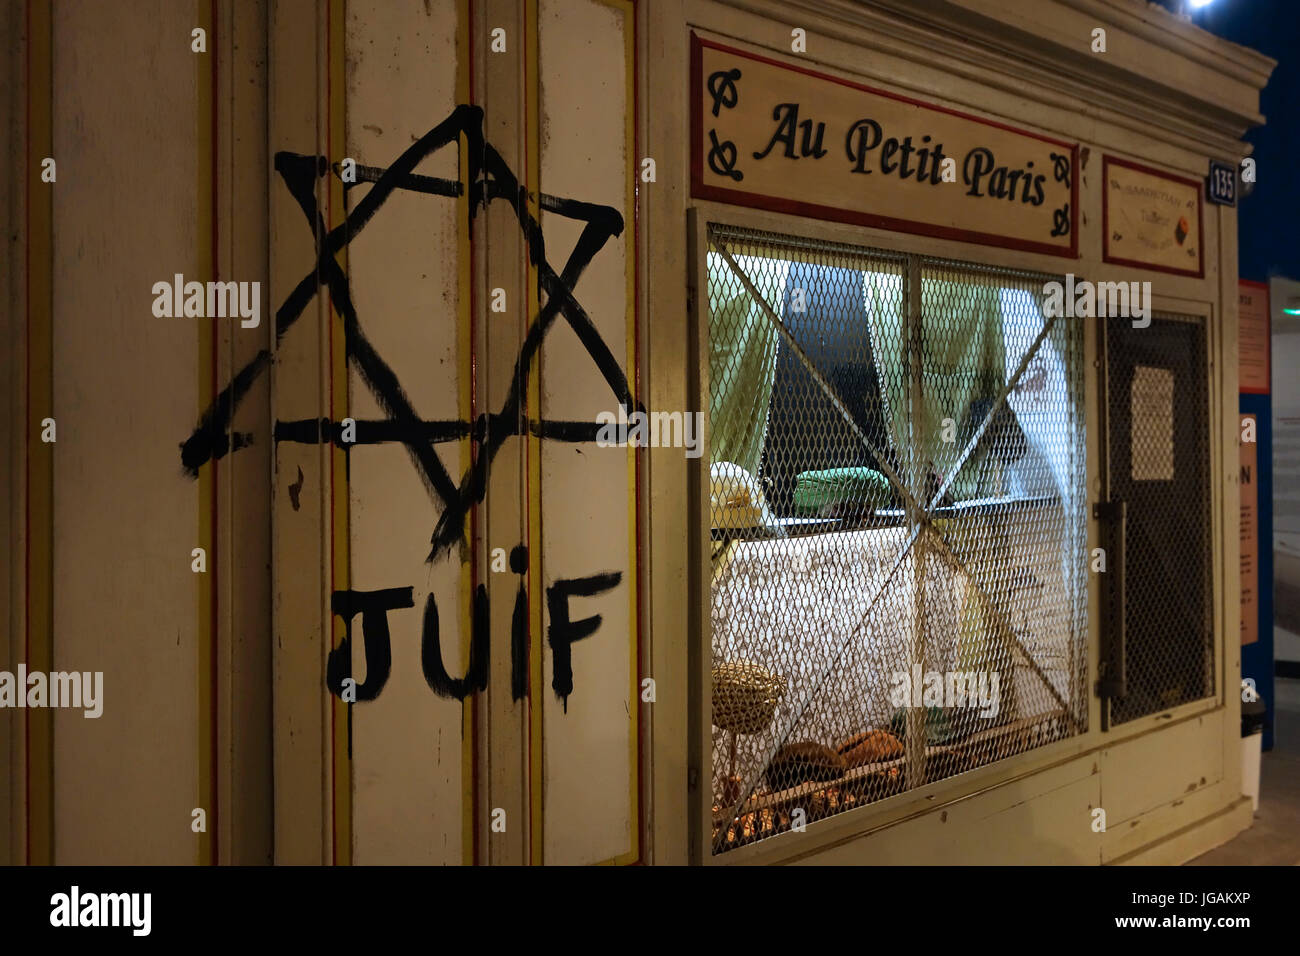 Star of David painted on shop front by Nazis during Holocaust to identify Jews at the Memorial World War II Museum - Stock Image